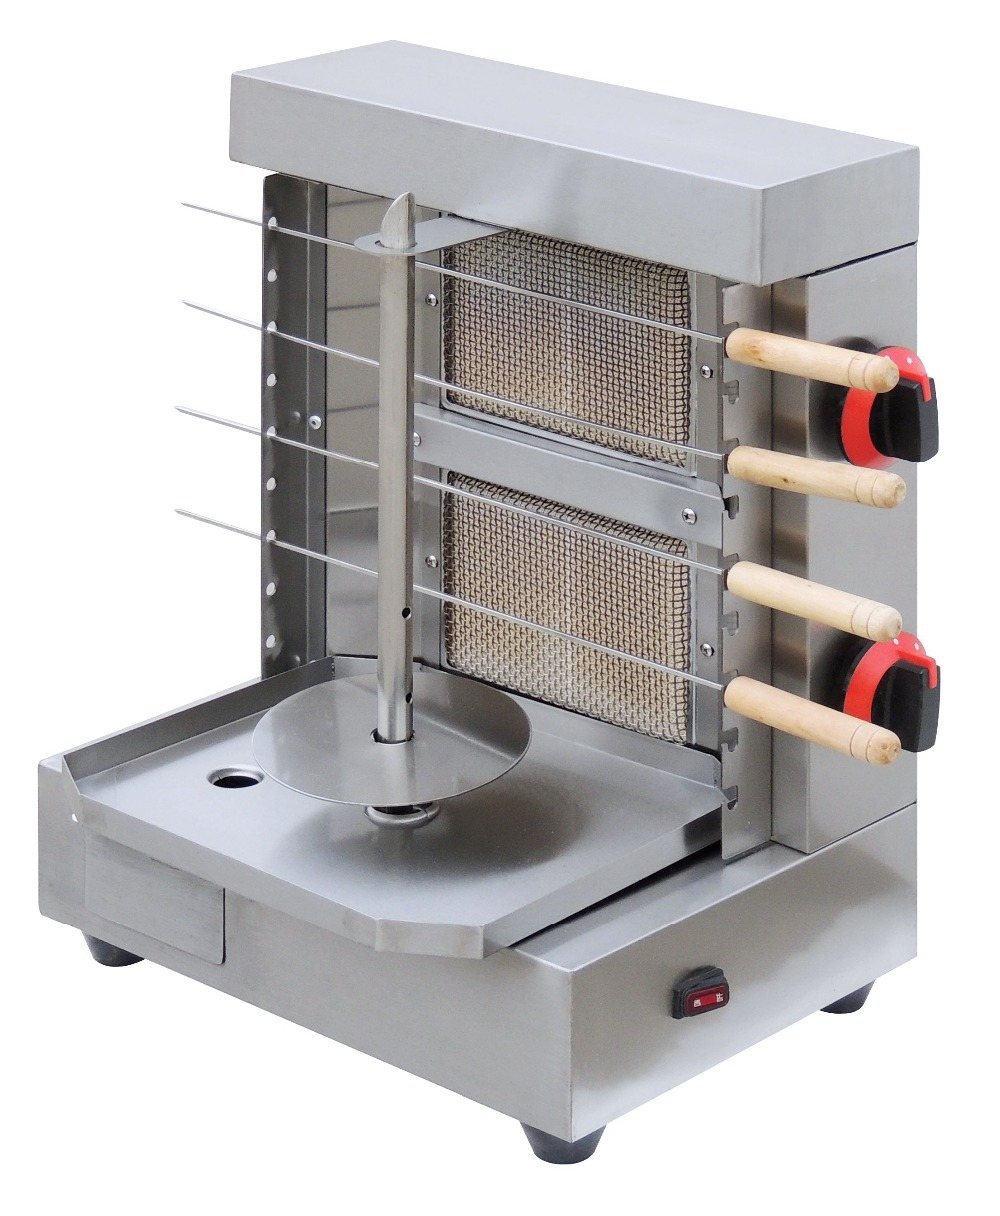 hot sale gas bbq shawarma machine with skewers stainless steel gas vertical rotisserie broiler mini gas barbecue kebab machine